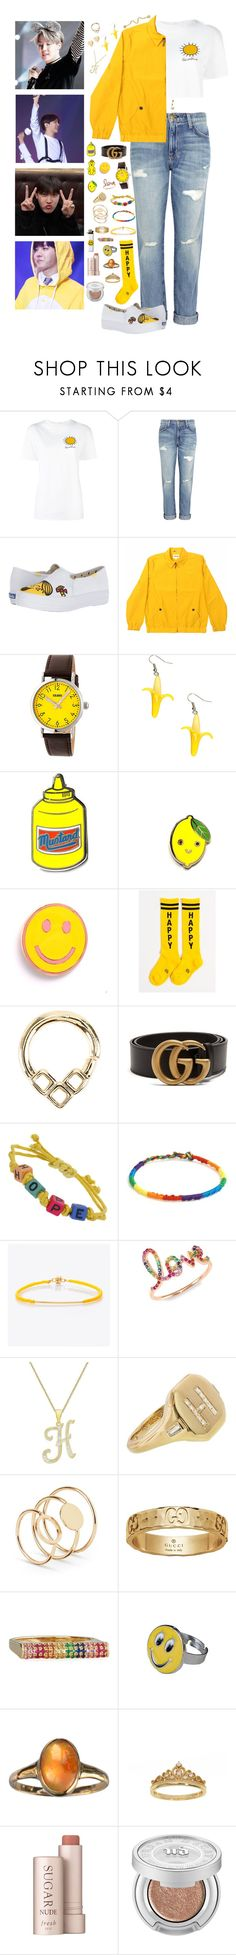 """~~happy birthday to my hope, j hope!~~"" by we-are-the-wild-ones ❤ liked on Polyvore featuring Christopher Kane, Current/Elliott, Keds, tuktuk, Crayo, PINTRILL, Gumball Poodle, Hot Topic, Lipsy and Gucci"